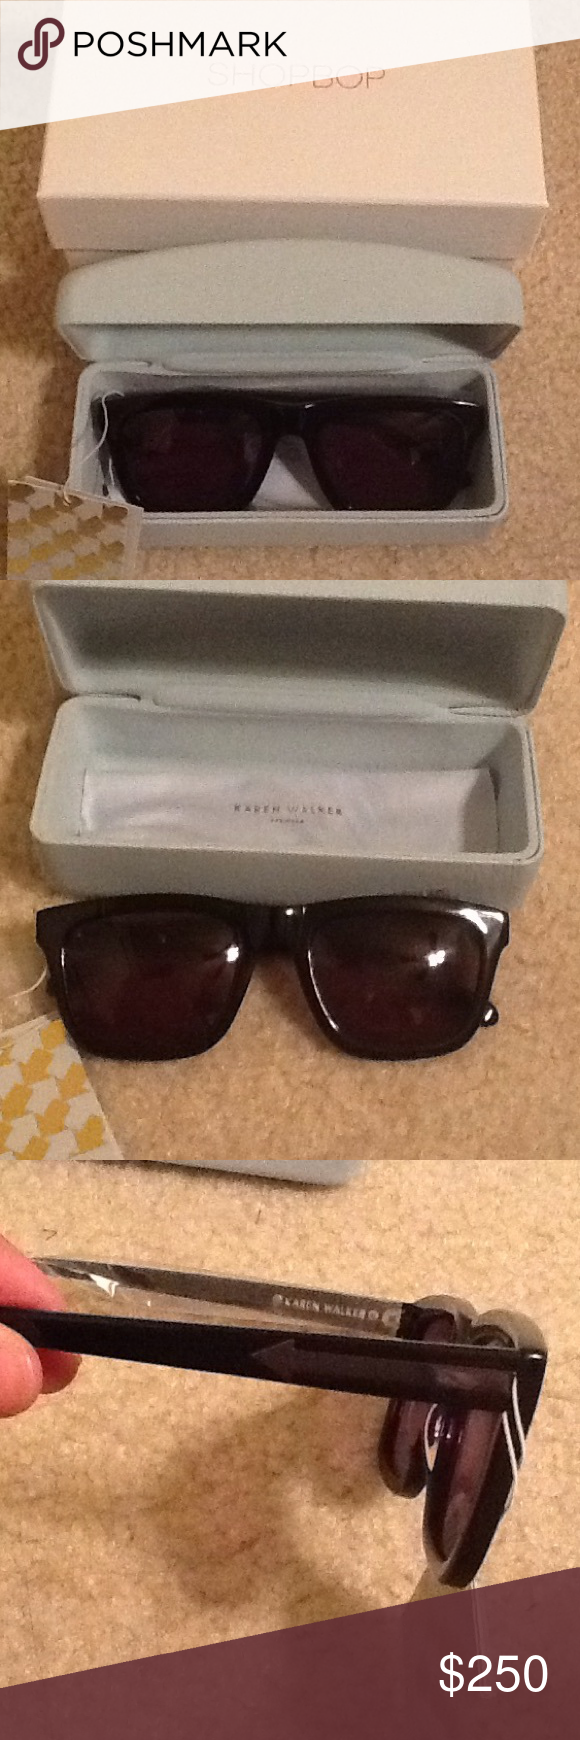 b55c1bfc9ee NWT Karen Walker Deep Freeze Sunglasses New Karen Walker Deep Freeze  Sunglasses. In perfect condition my mom got them for me and I just didn t  like the way ...